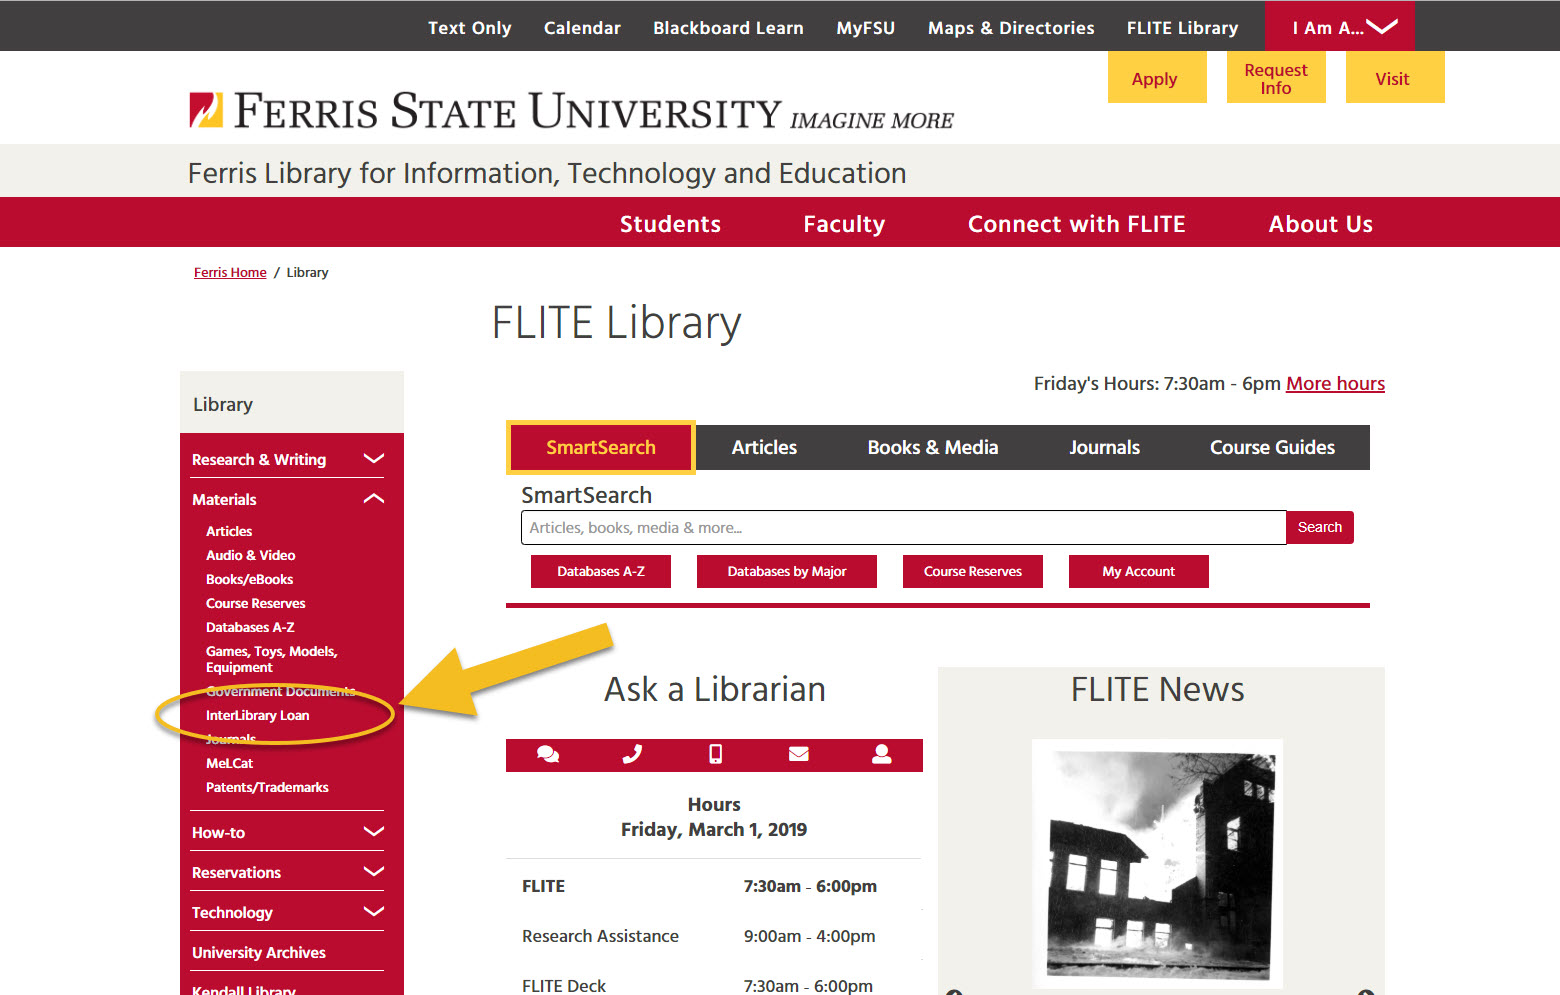 FLITE Library homepage